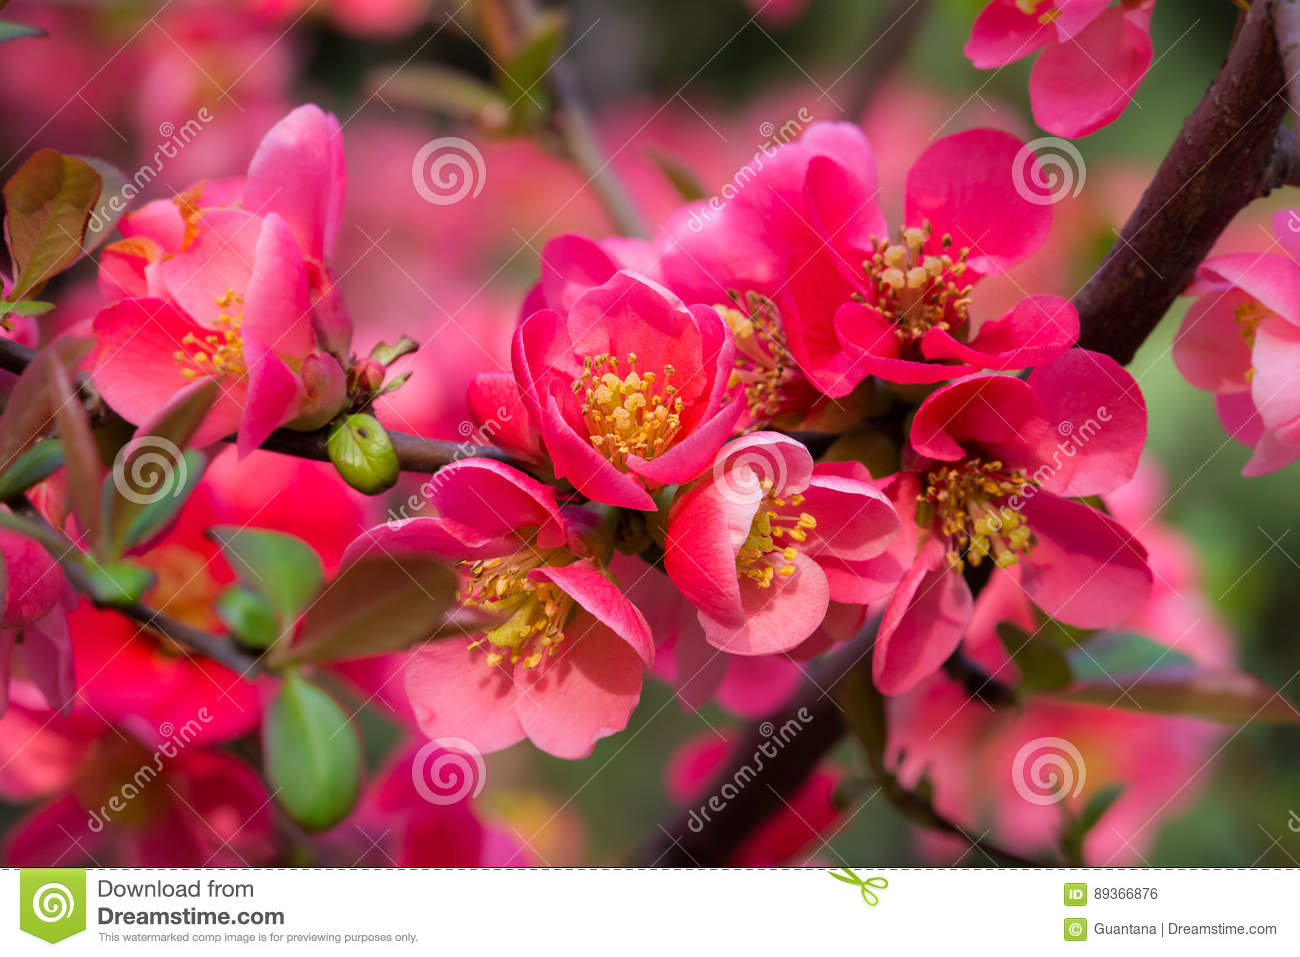 Japanese quince in blossom spring flowers stock photo image of download japanese quince in blossom spring flowers stock photo image of beauty natural mightylinksfo